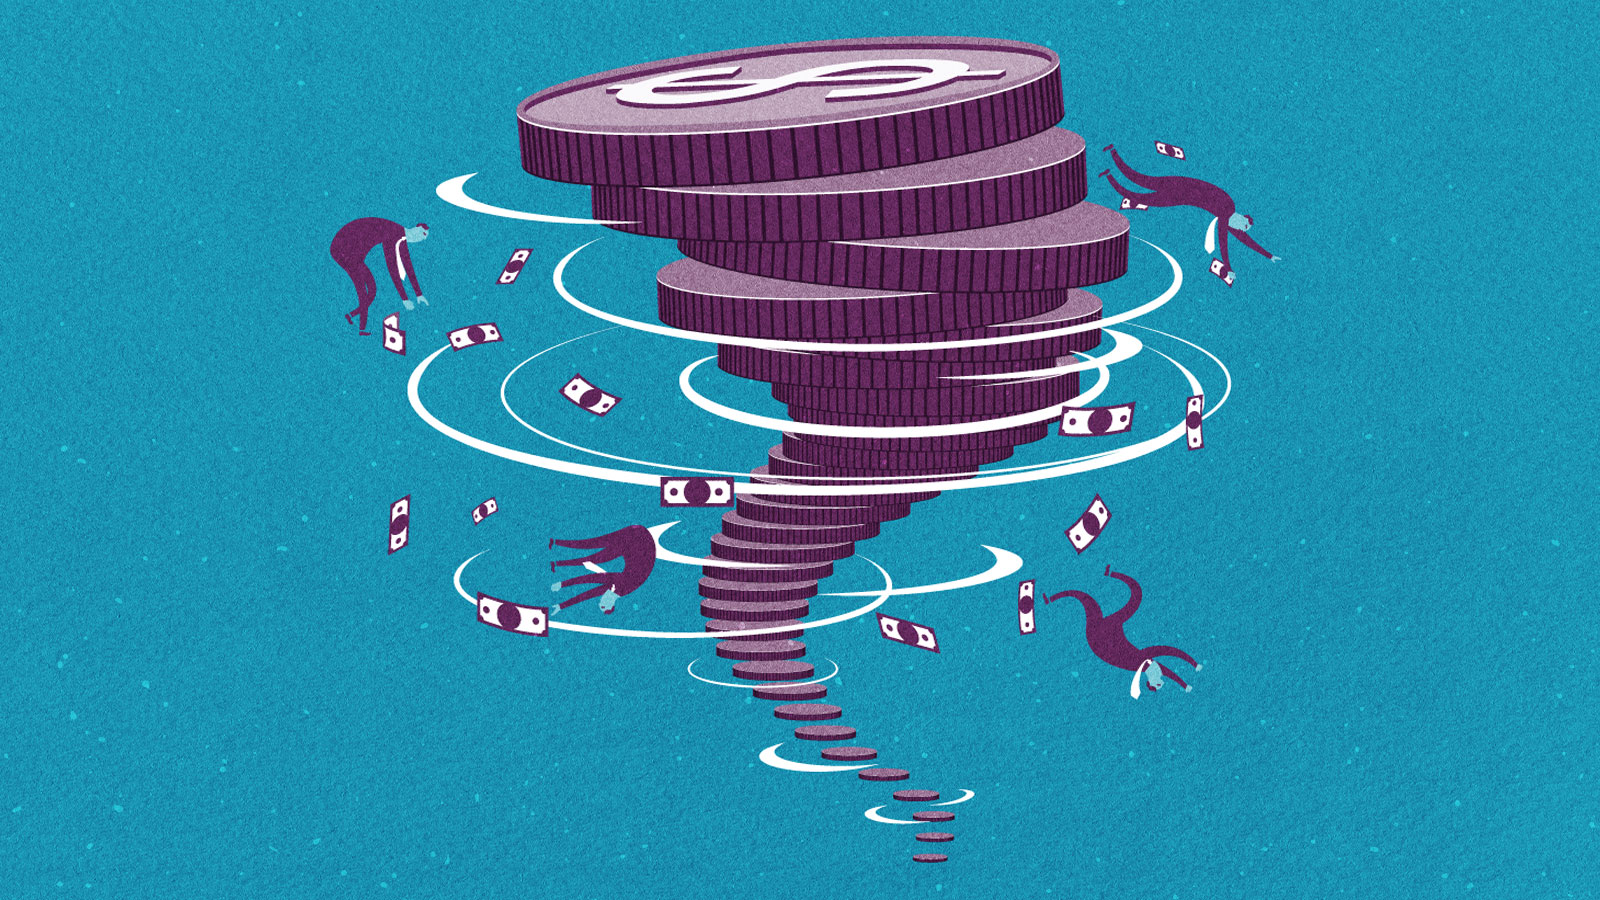 U.S. regulators woke up and realized climate change could cause a financial crisis